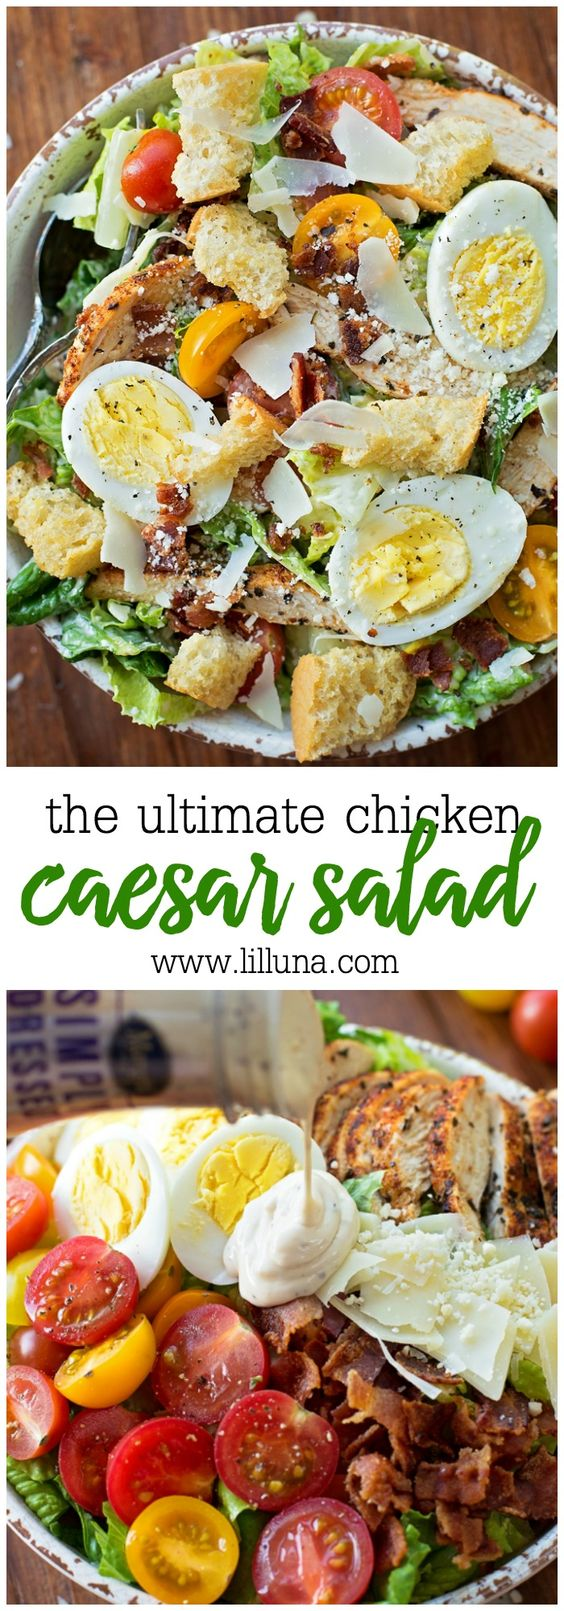 Ultimate Caesar Salad with grilled chicken, croutons, tomatoes, bacon, hard-boiled eggs, Parmesan cheese and tomatoes. Simply AMAZING!!!